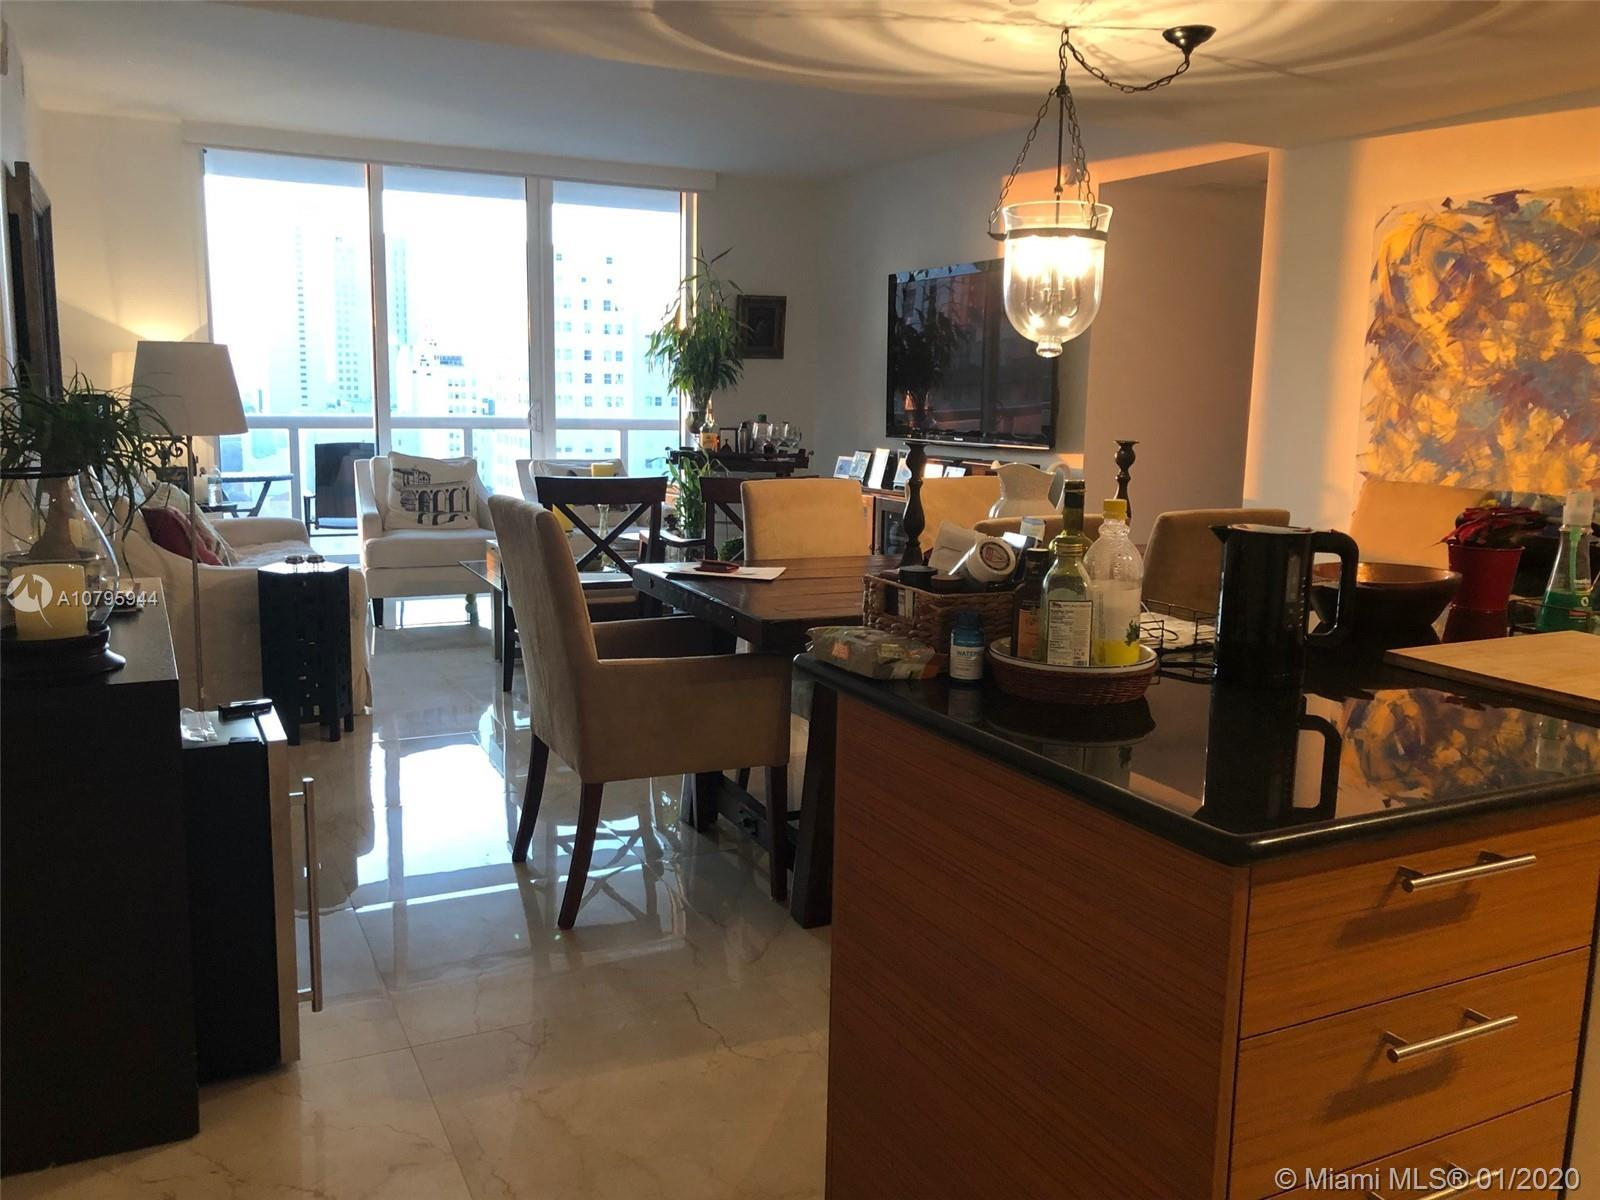 SPECTACULAR 2 BED 2 BATHS CORNER UNIT, HUGE WRAP AROUND BALCONY WITH AMAZING VIEWS OF THE BAY AND TH